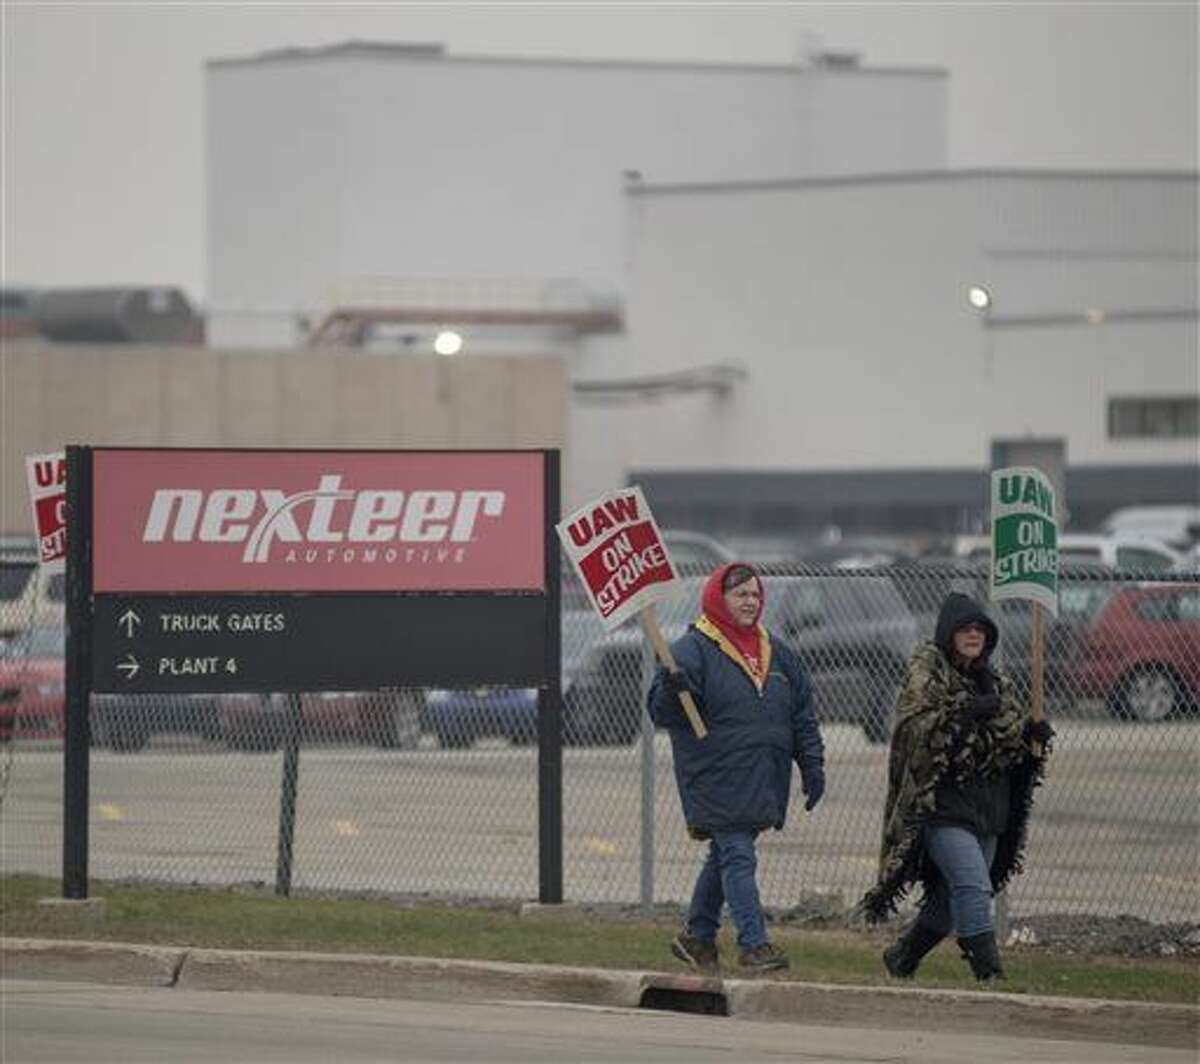 Members of UAW Local 699 hold signs as they picket outside of the Nexteer Automotive plant in Saginaw County's Buena Vista Township, Mich., Tuesday, Dec. 8, 2015. United Auto Workers union members at a Nexteer Automotive manufacturing complex in Michigan walked off the job after workers rejected a tentative contract with the auto parts supplier. (Jeff Schrier/The Saginaw News/MLive.com via AP)